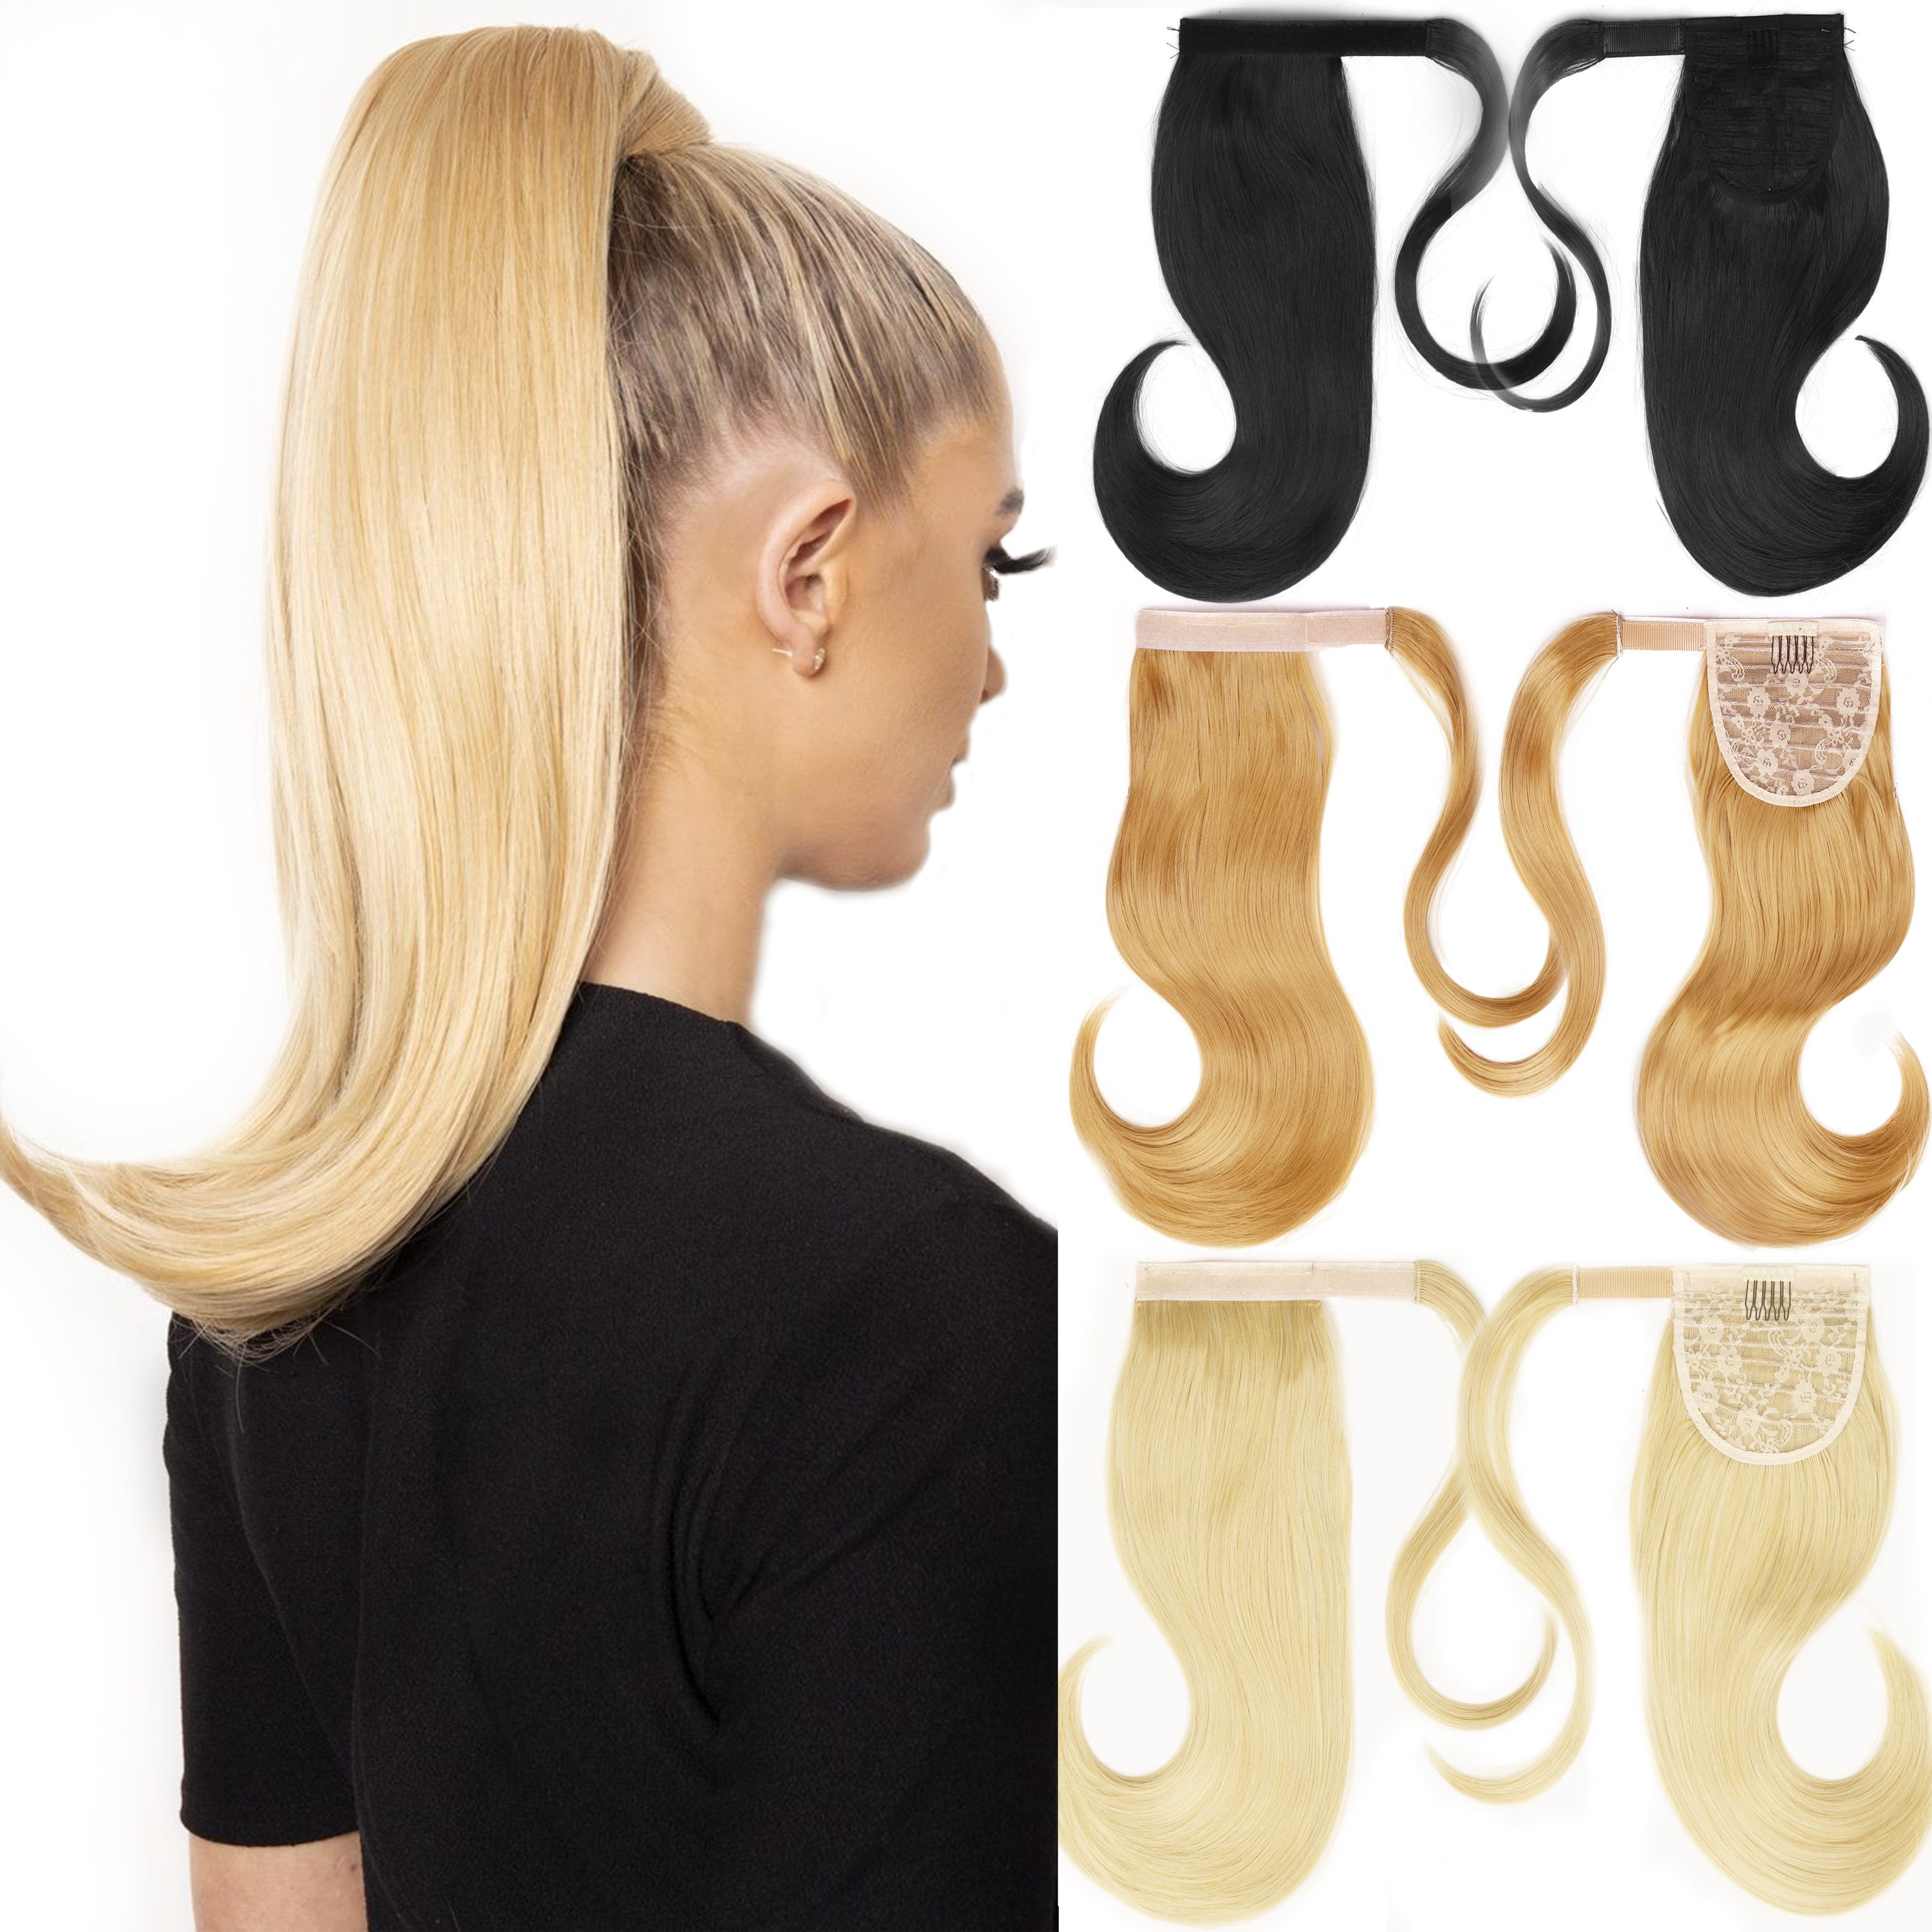 AliExpress - MERISIHAIR Bounce Wraparound Ponytail Hair Pieces Synthetic Straight Hair Extensions With Combs Warp Ponytails For Women